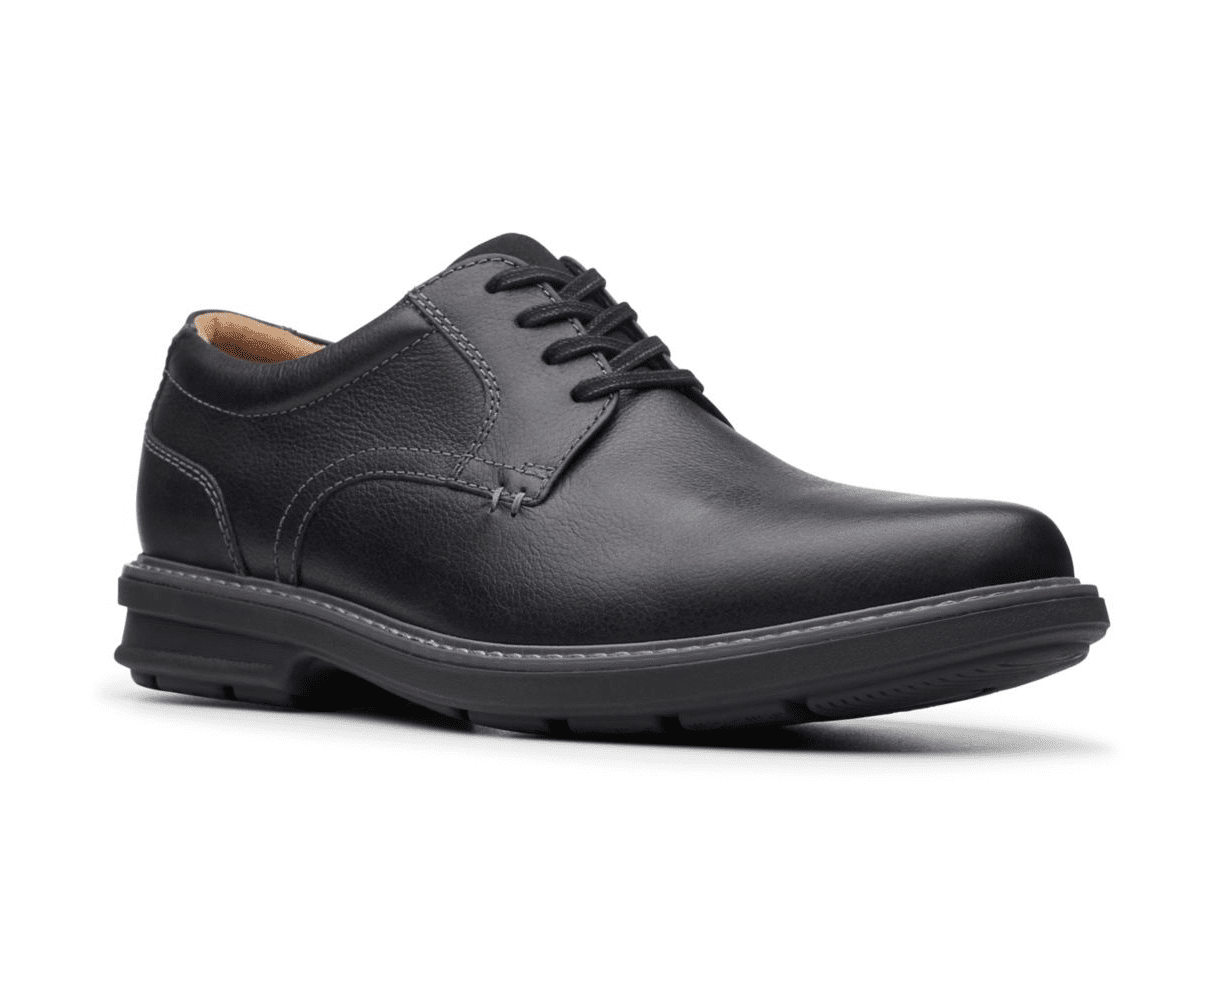 Clarks: Up to 70% off shoes sale + extra 25% off.